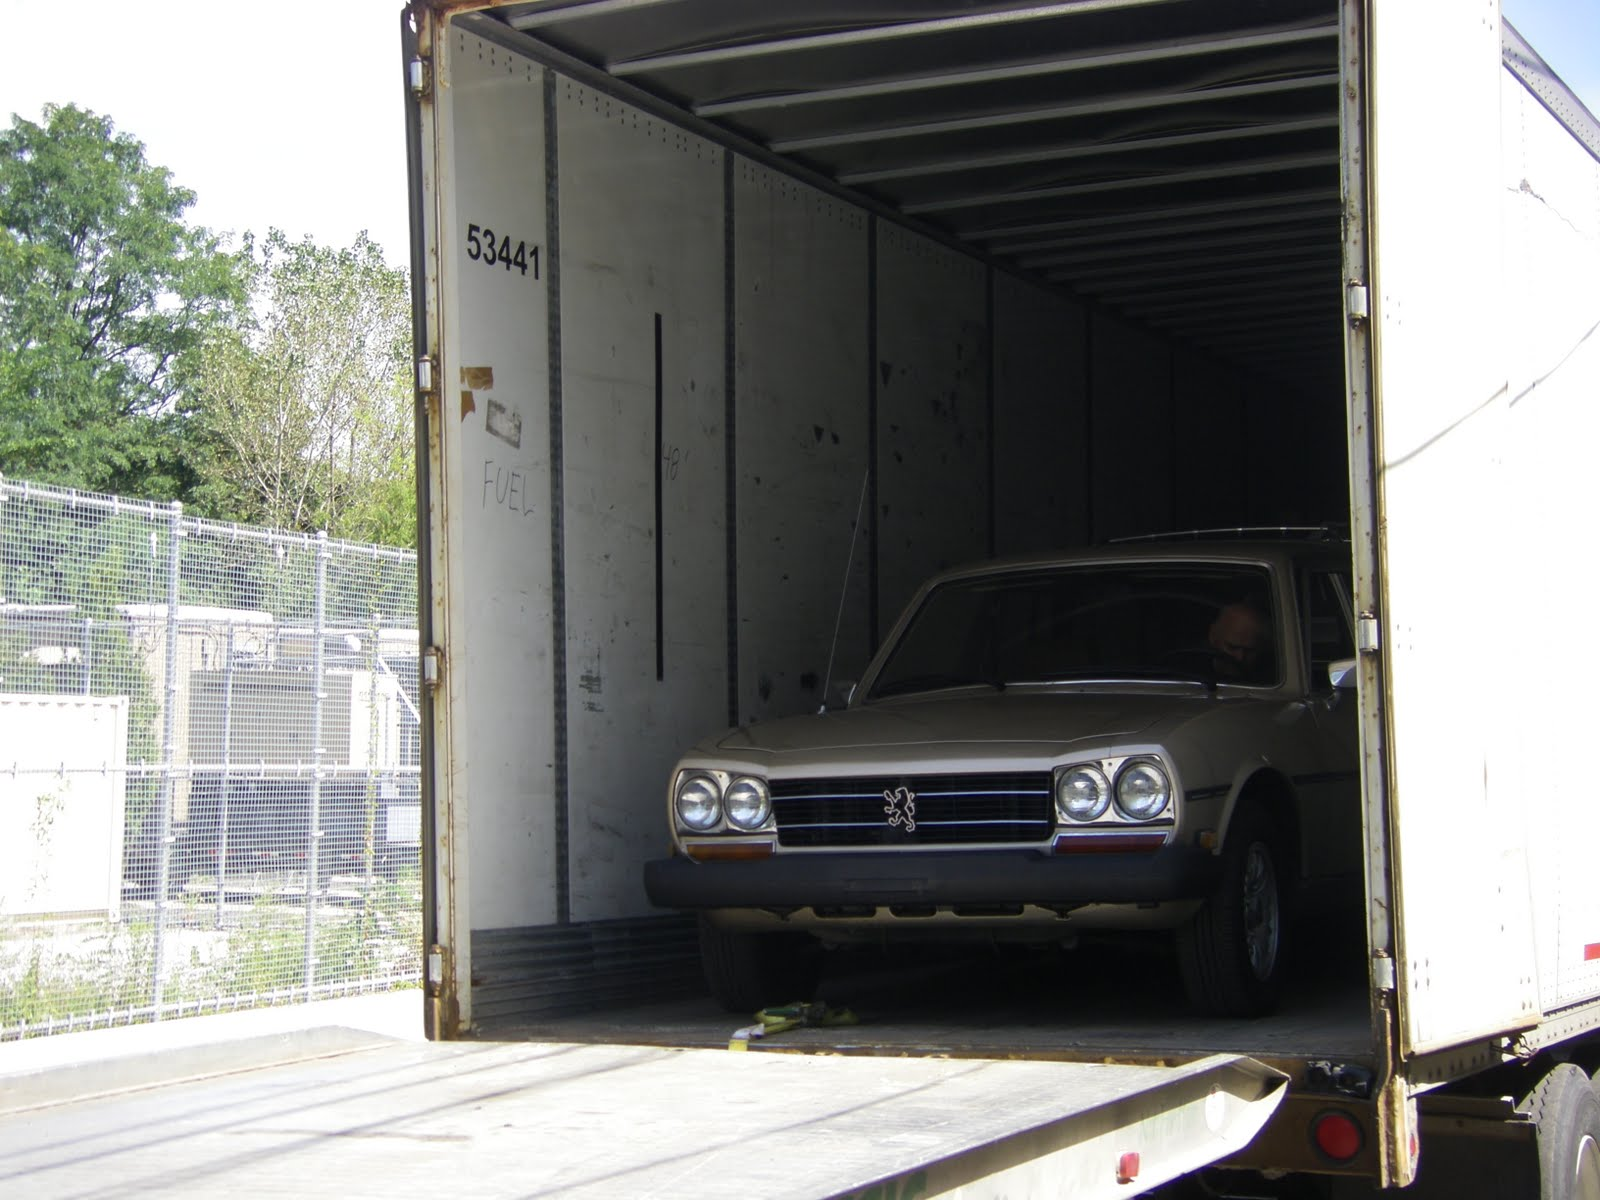 Just A Car Geek 1981 Peugeot 504 Diesel Wagon On Its Way To Montreal